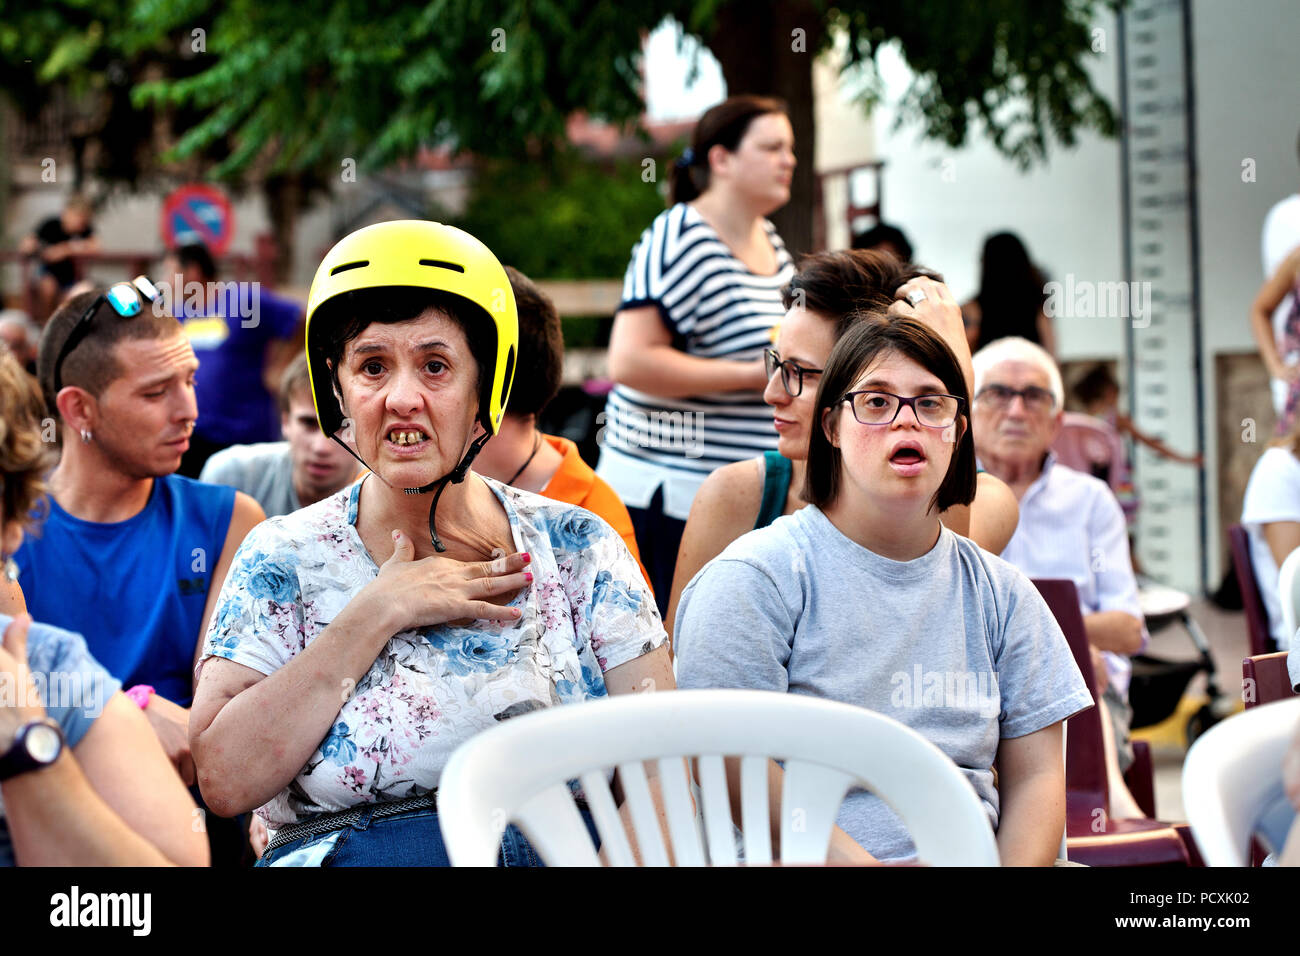 A woman with learning difficulties and a woman with down syndrome sat in main square during the summer festivities, Cherta, Tarragona. - Stock Image